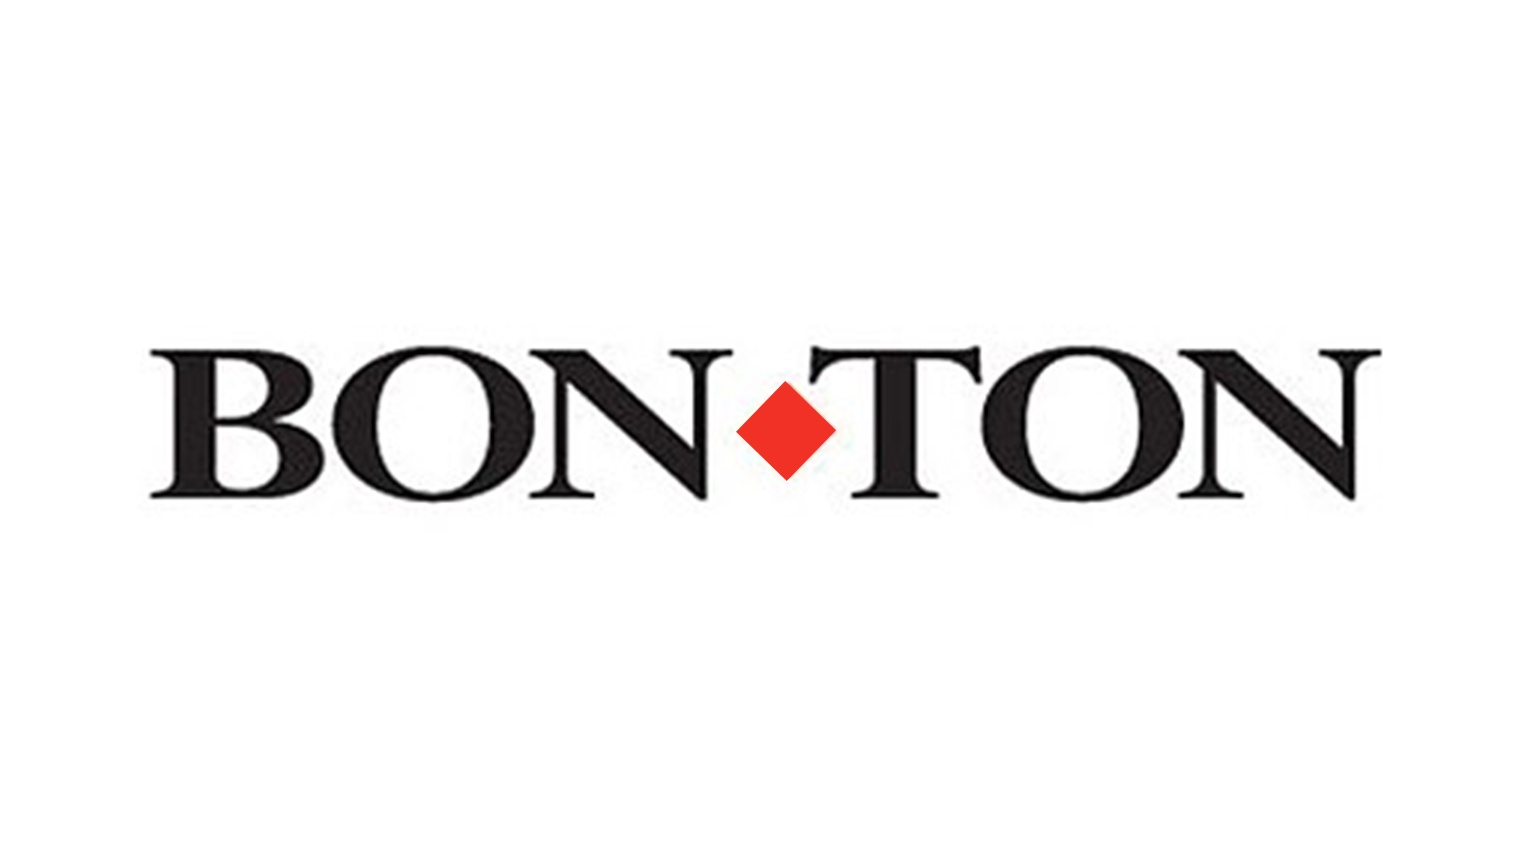 Bon-Ton Holdings Inc. is an American online retailer and former department store chain founded in After rapid expansion in the s and early s, the company had financial troubles, ultimately filing for bankruptcy in before being sold and steam-key.gqry: Retail.